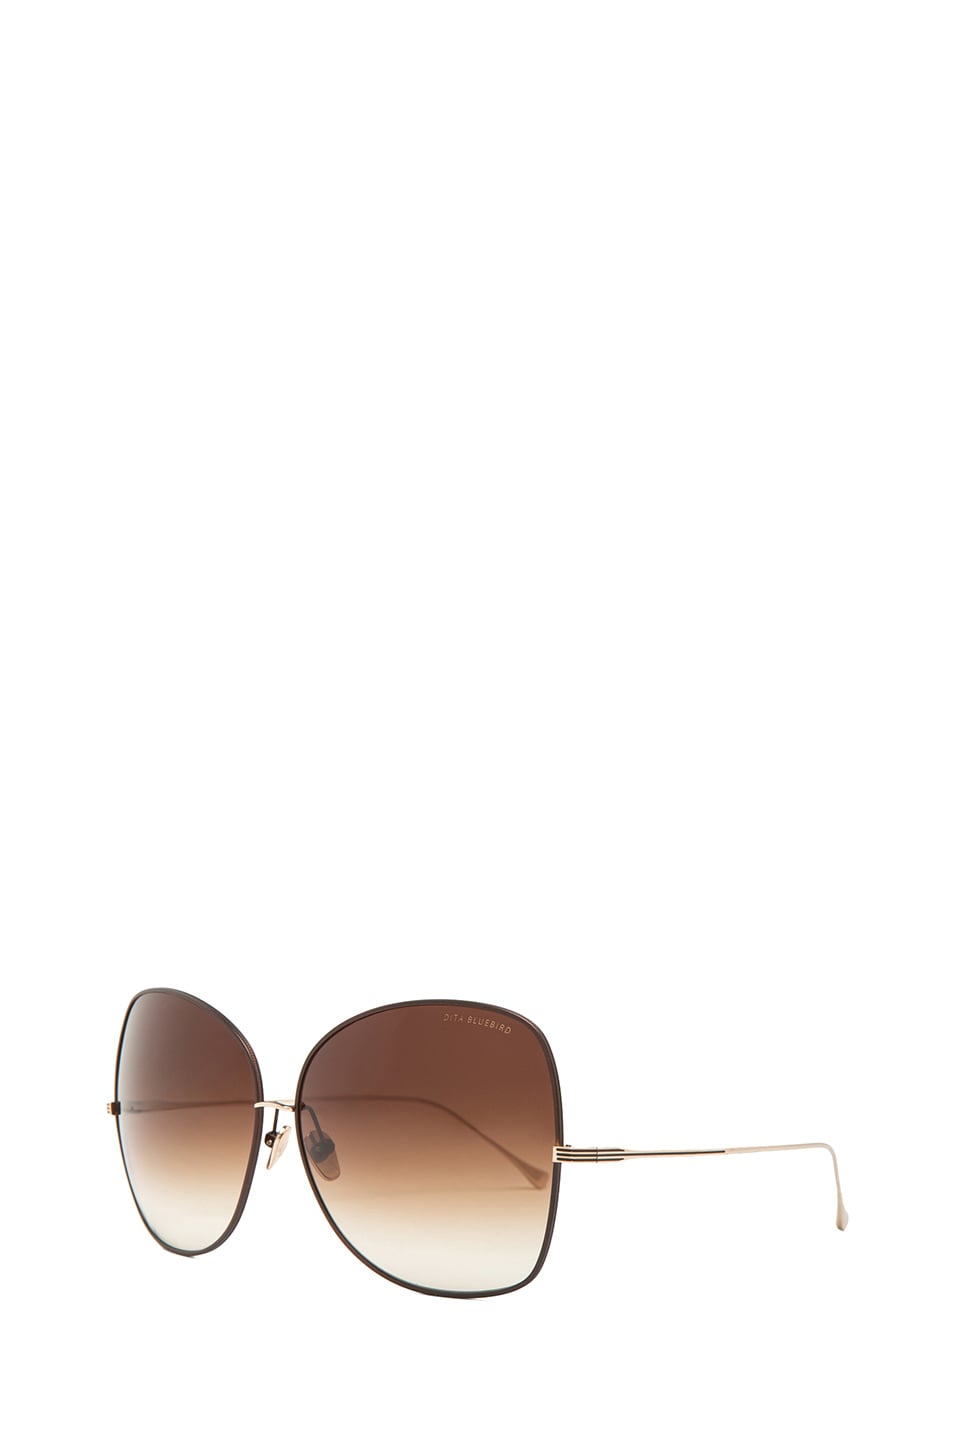 0d282bf5b965 Image 2 of Dita Bluebird Sunglasses in Brown   Champagne